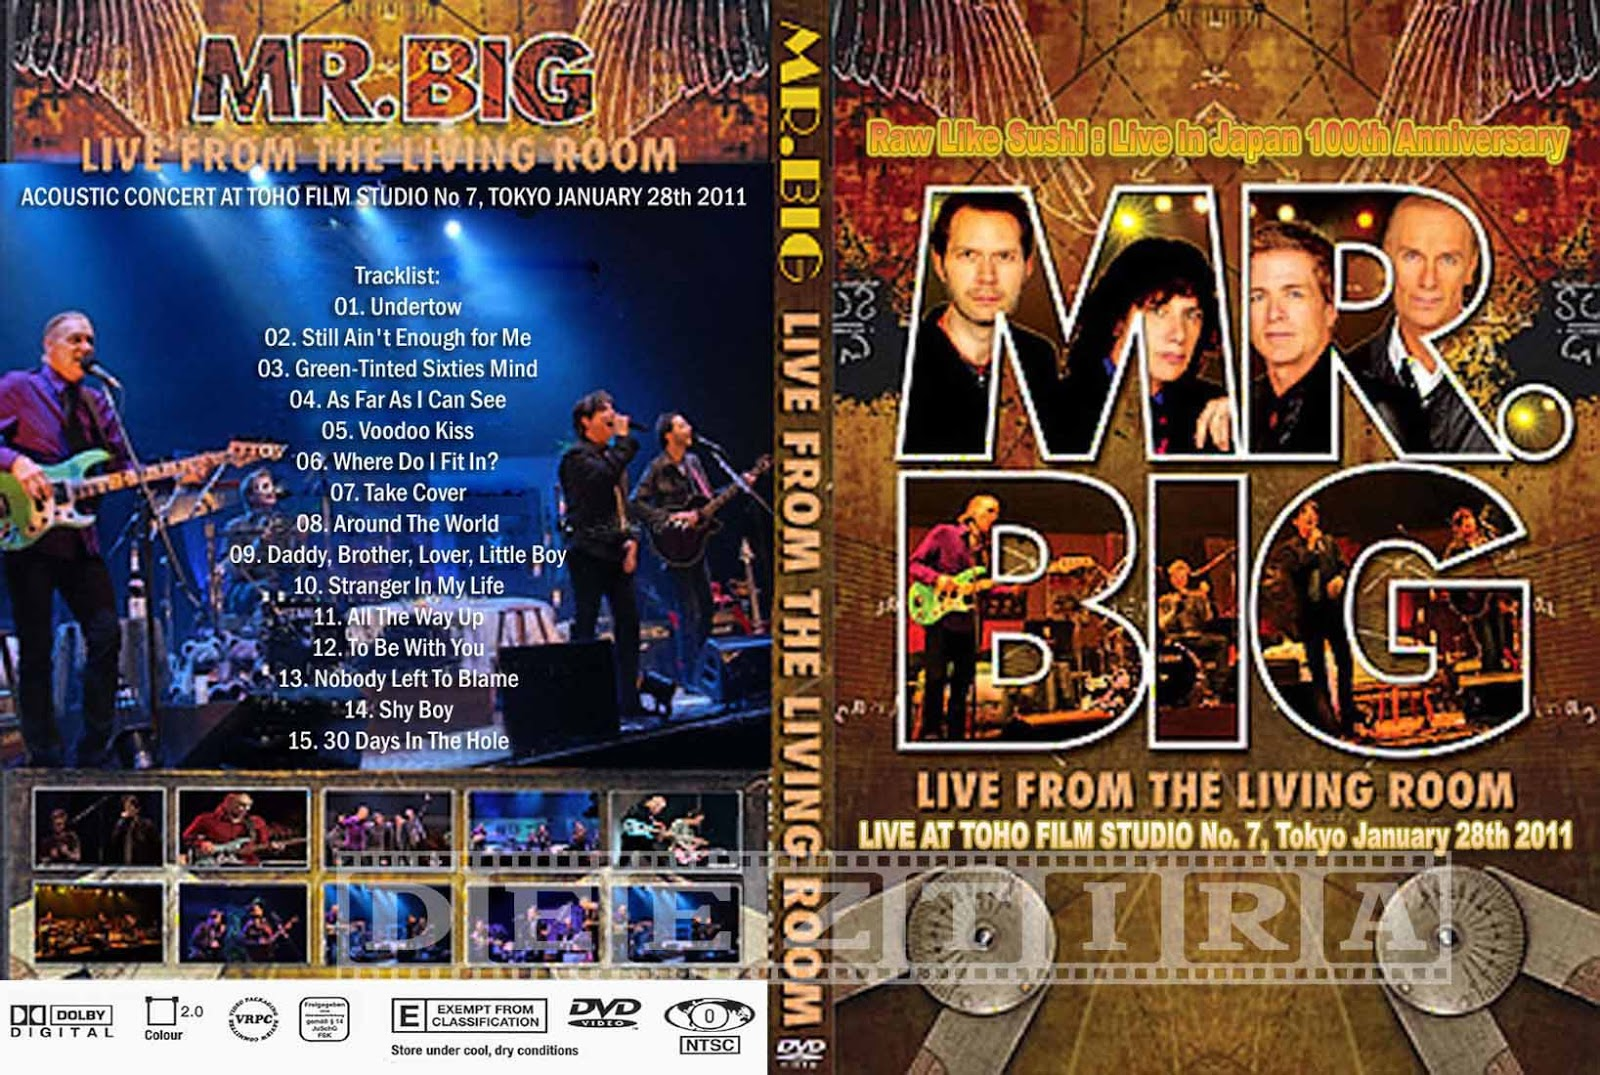 live from the living room youdiscoll mr big live from the living room 2012 19352